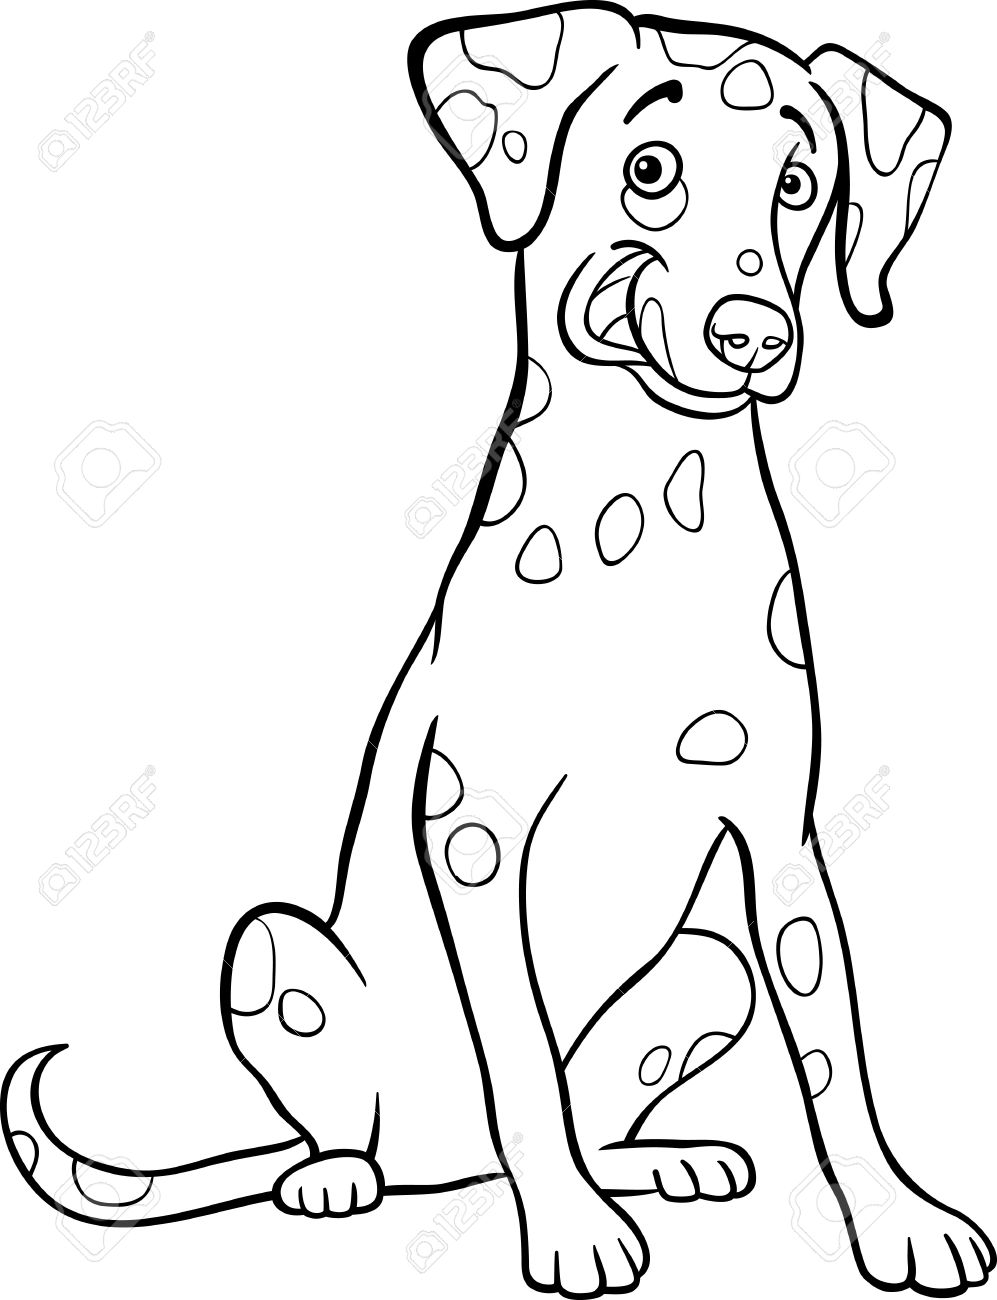 997x1300 Dalmation Clipart Black And White